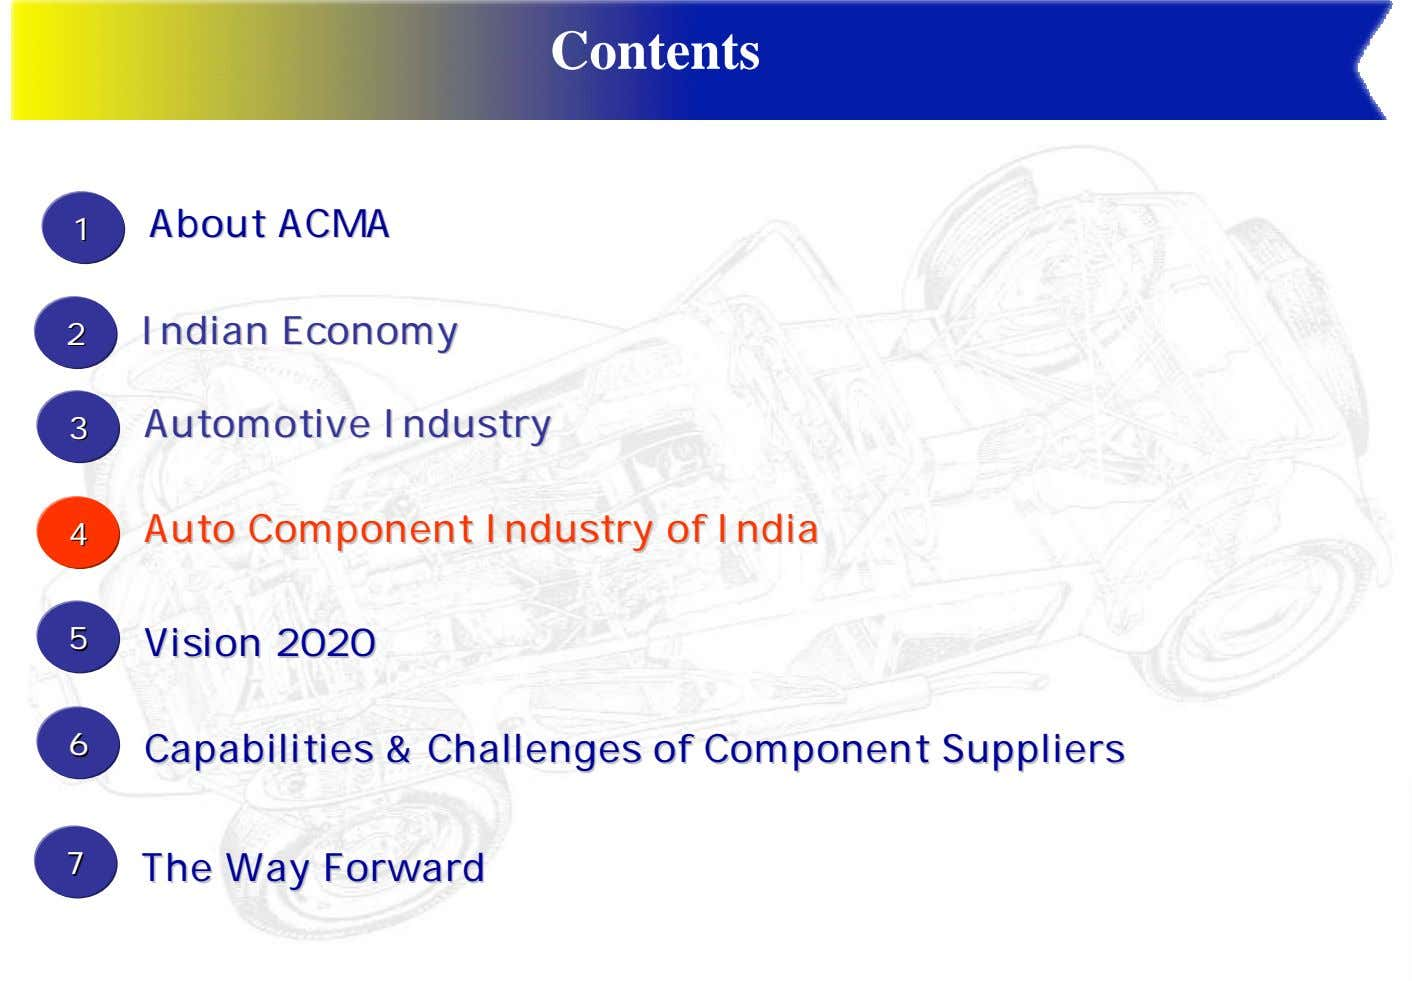 Contents AboutAbout ACMAACMA 11 22 IndianIndian EconomyEconomy 33 AutomotiveAutomotive IndustryIndustry 44